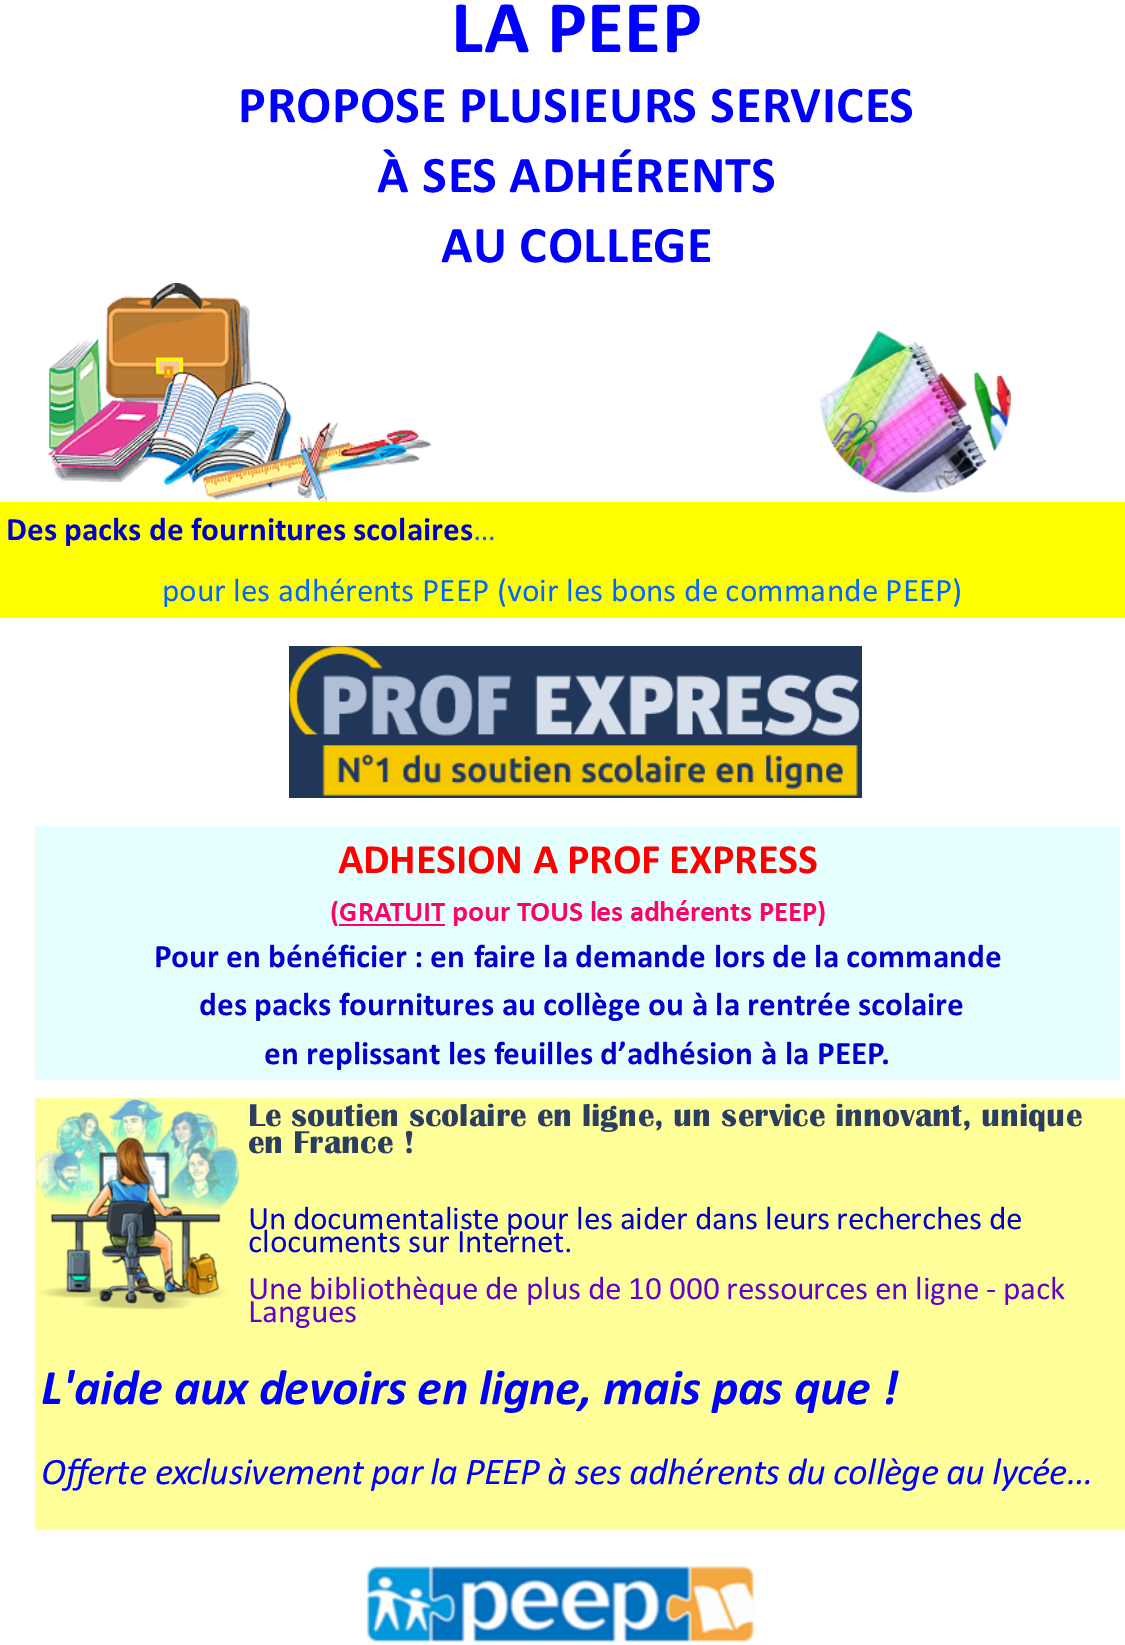 SERVICE PEEP PROF EXPRESS COLLEGE FORMAT IMAGE.png